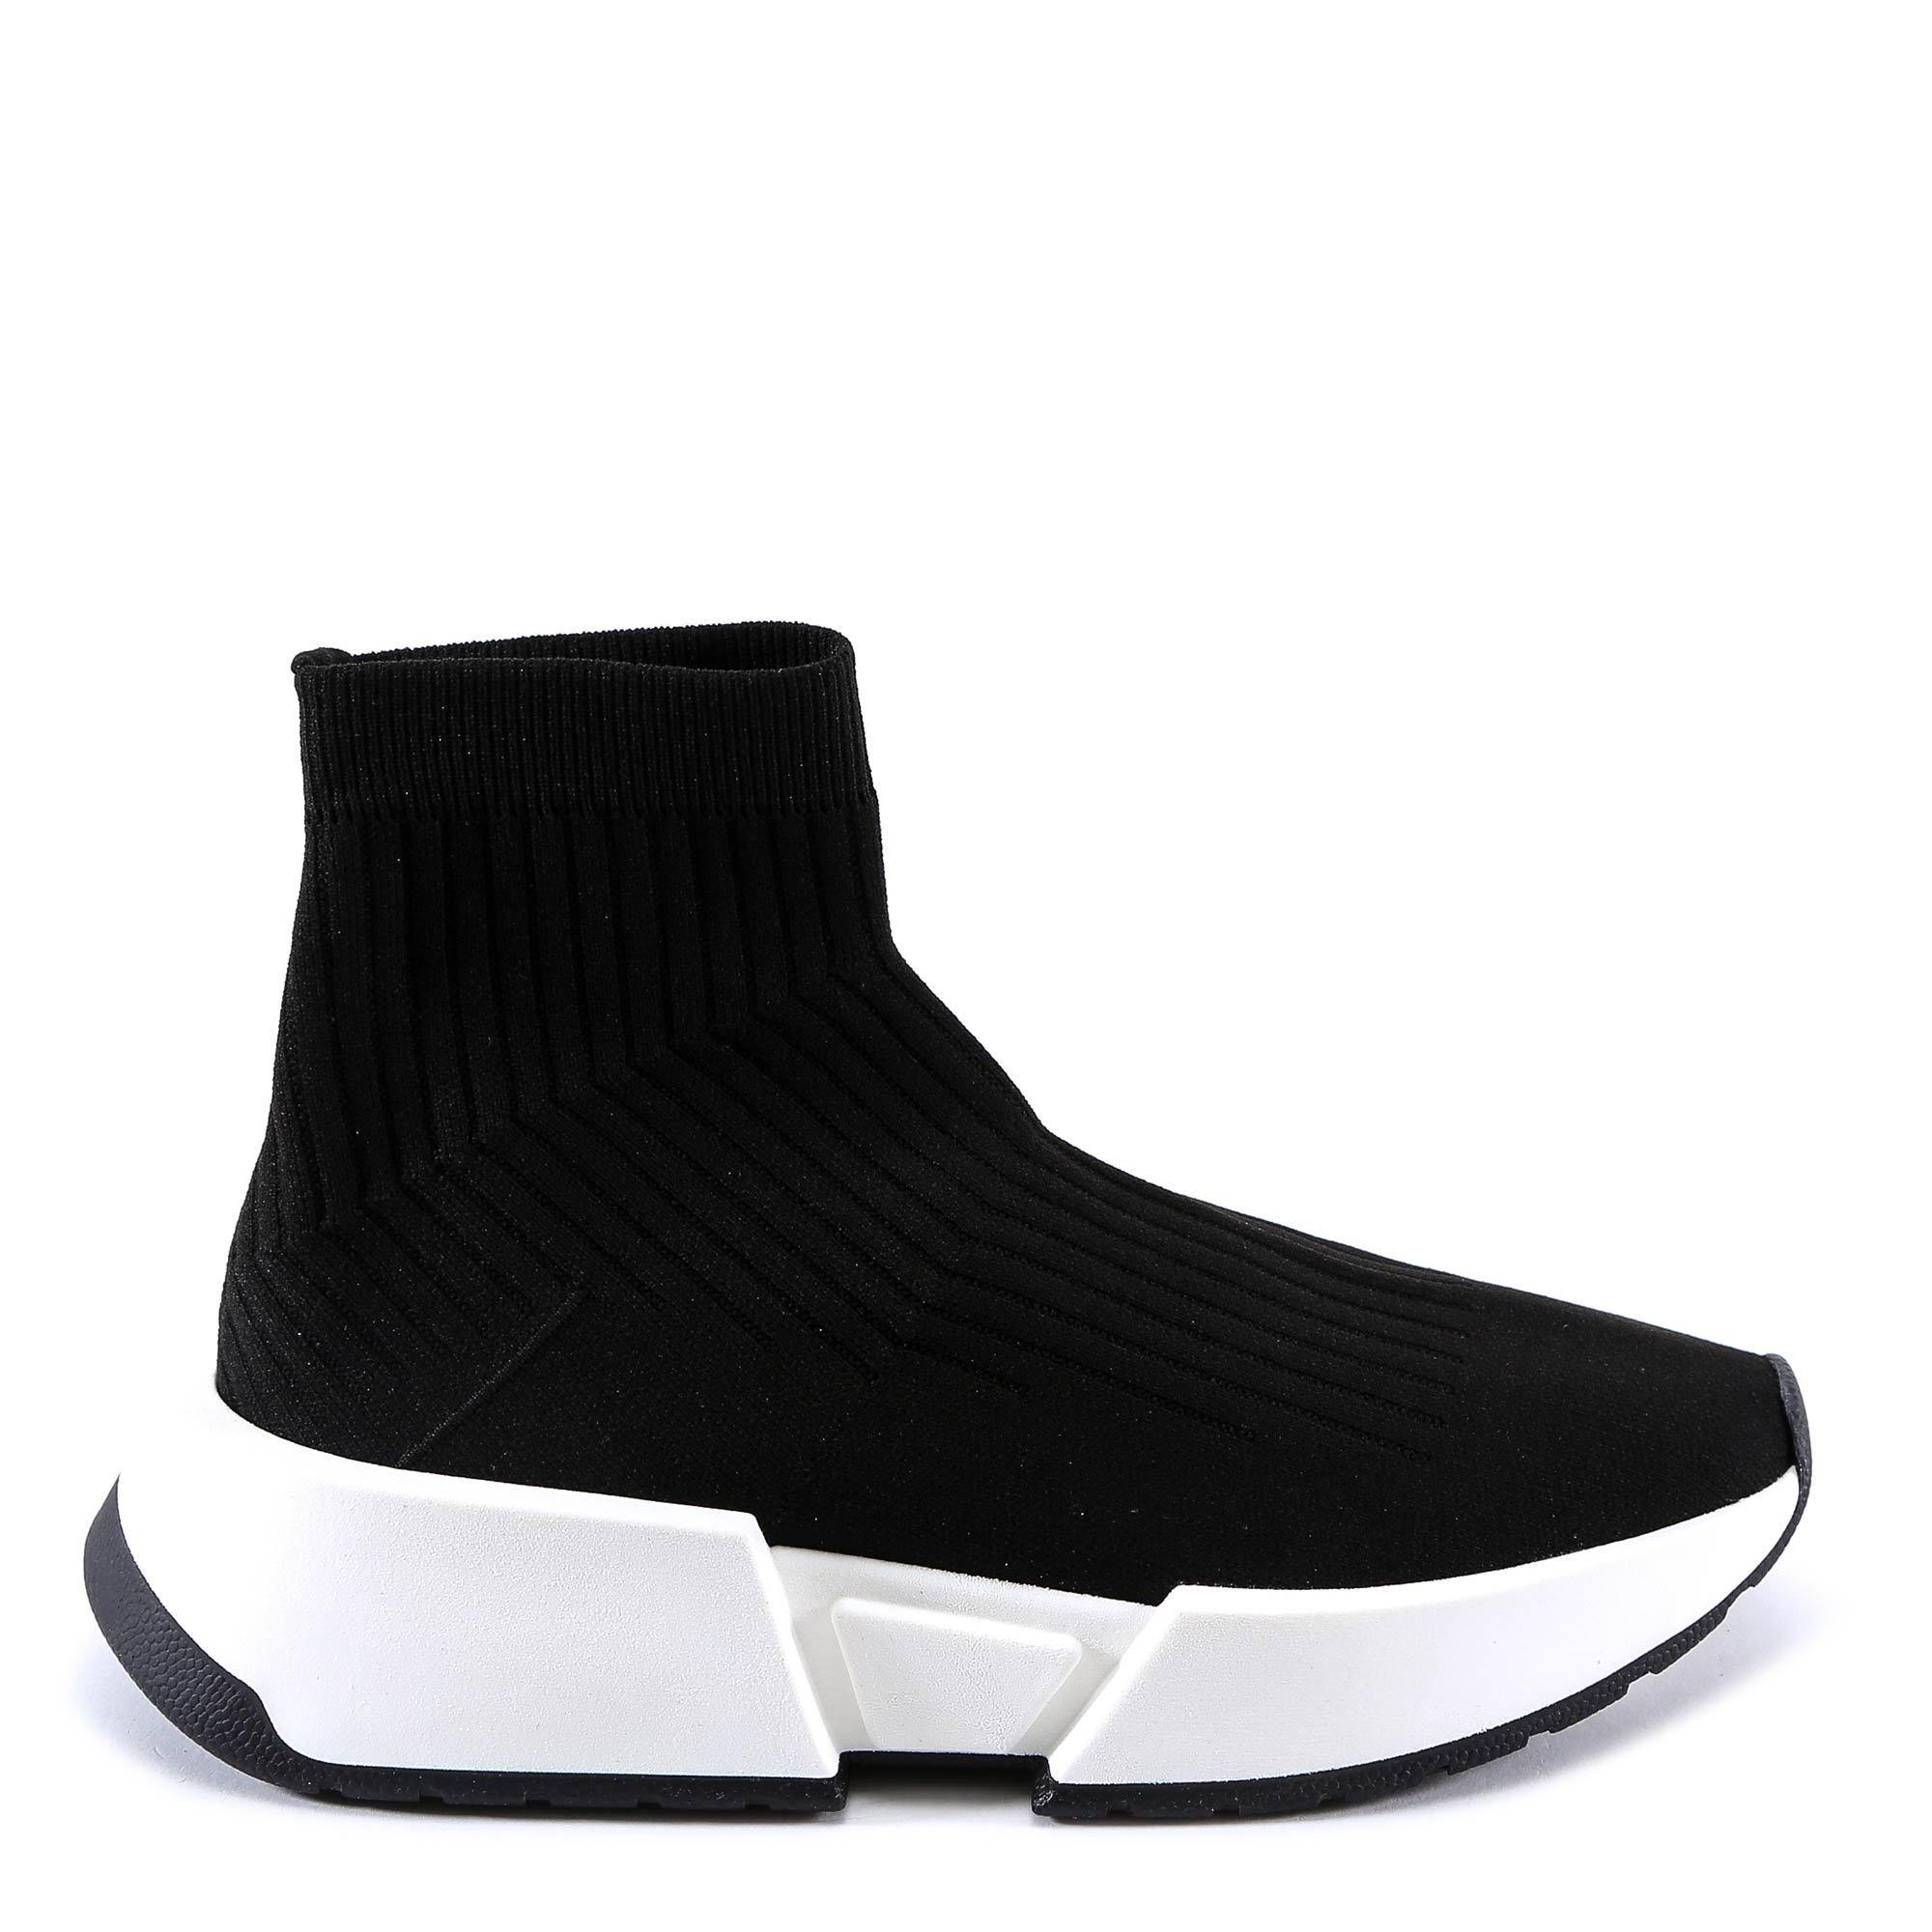 e84fb232c2c78 By Martin Mm6 Sneakers Lyst Maison Black Men Margiela For Sock In fq4wCOC